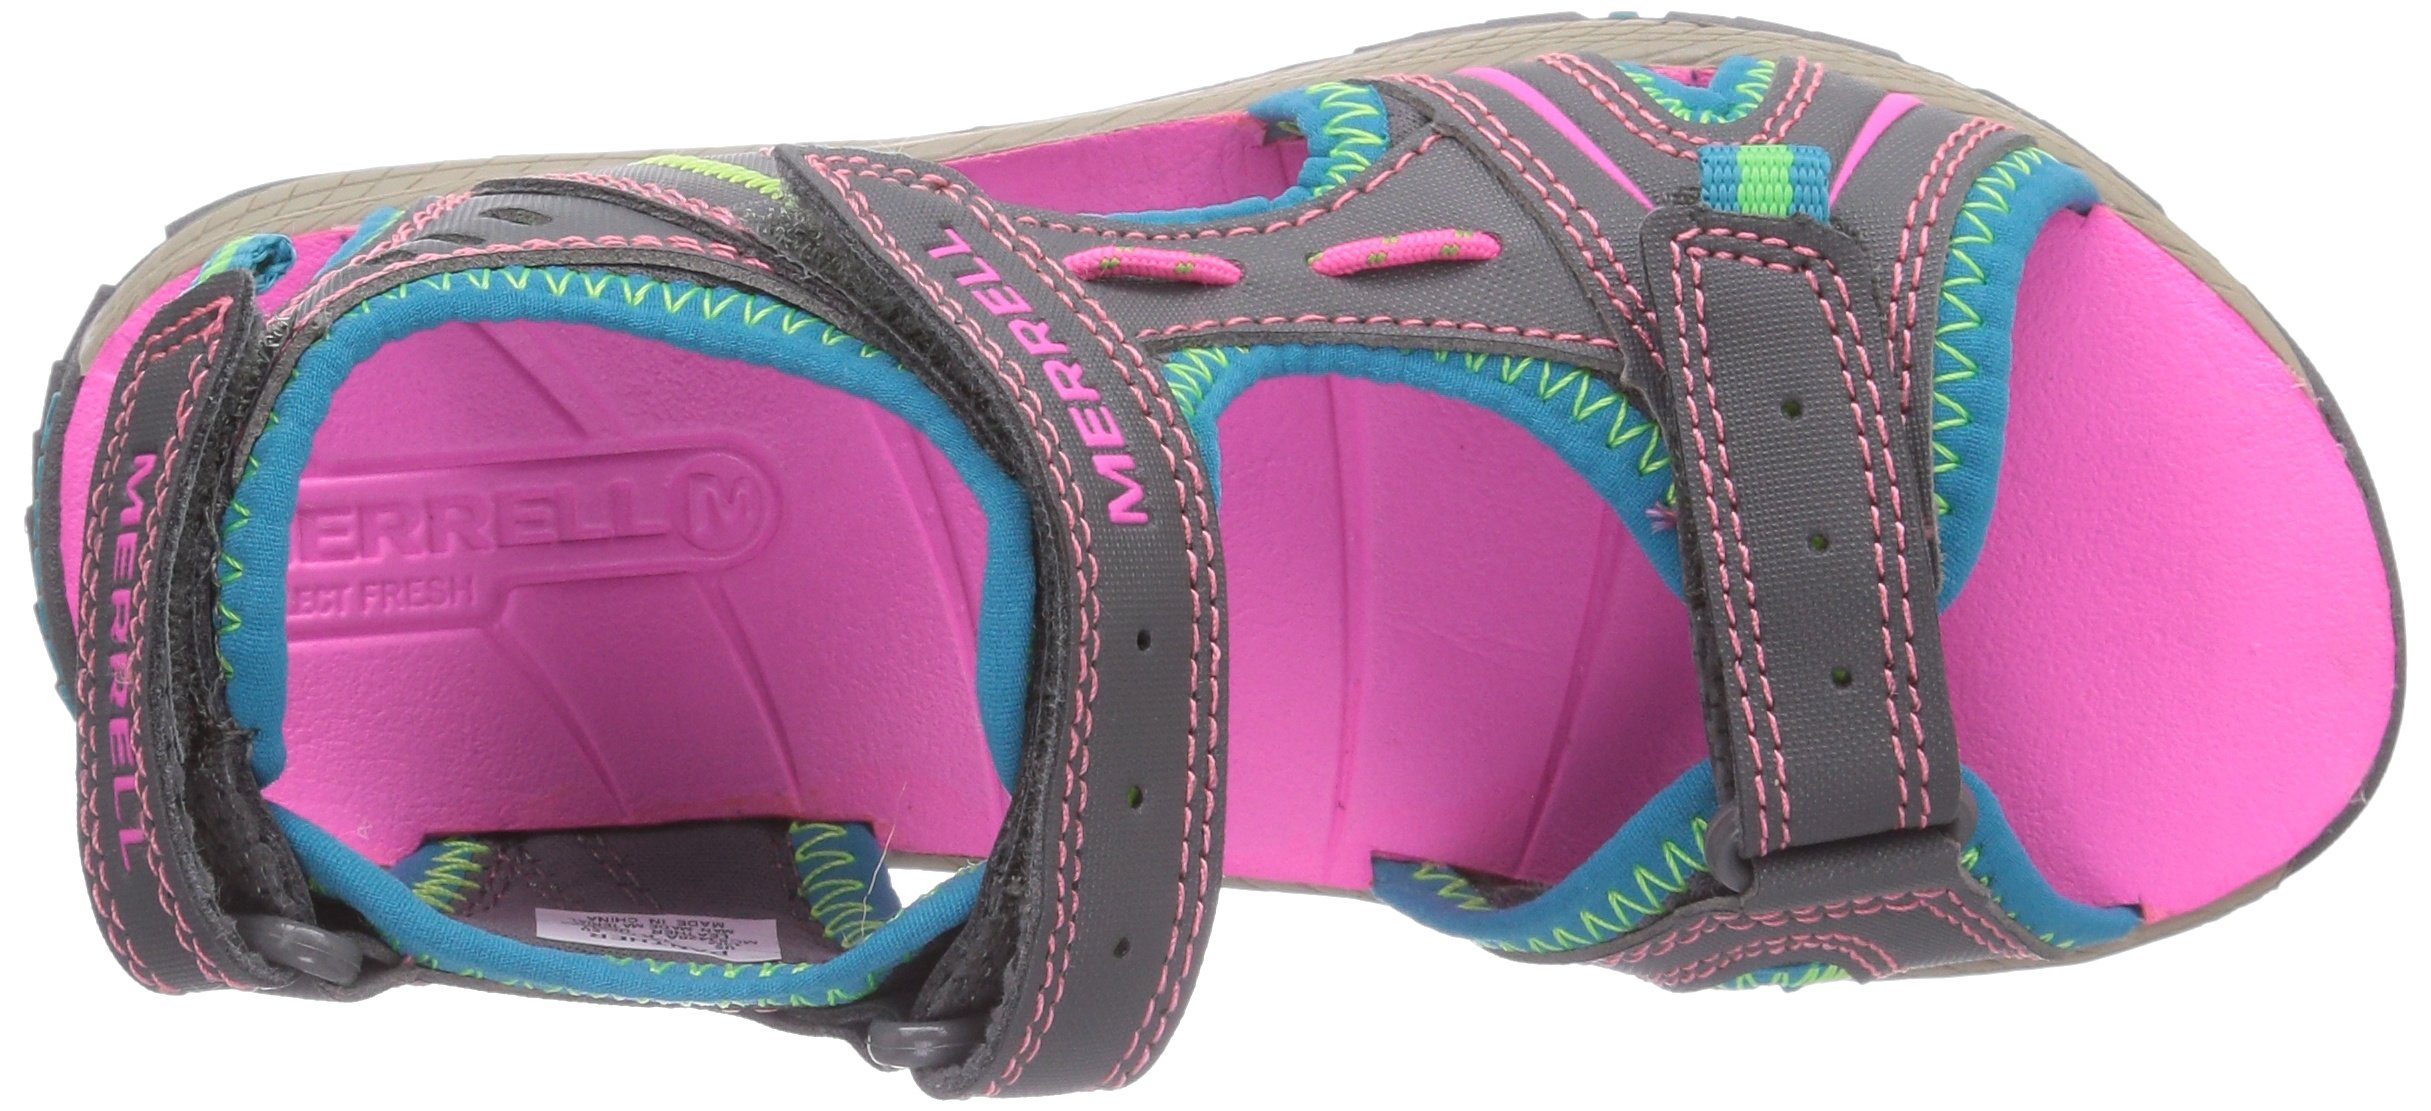 Merrell Panther Athletic Water Sandal , Blue/Pink/Green, 11 M US Little Kid by Merrell (Image #7)